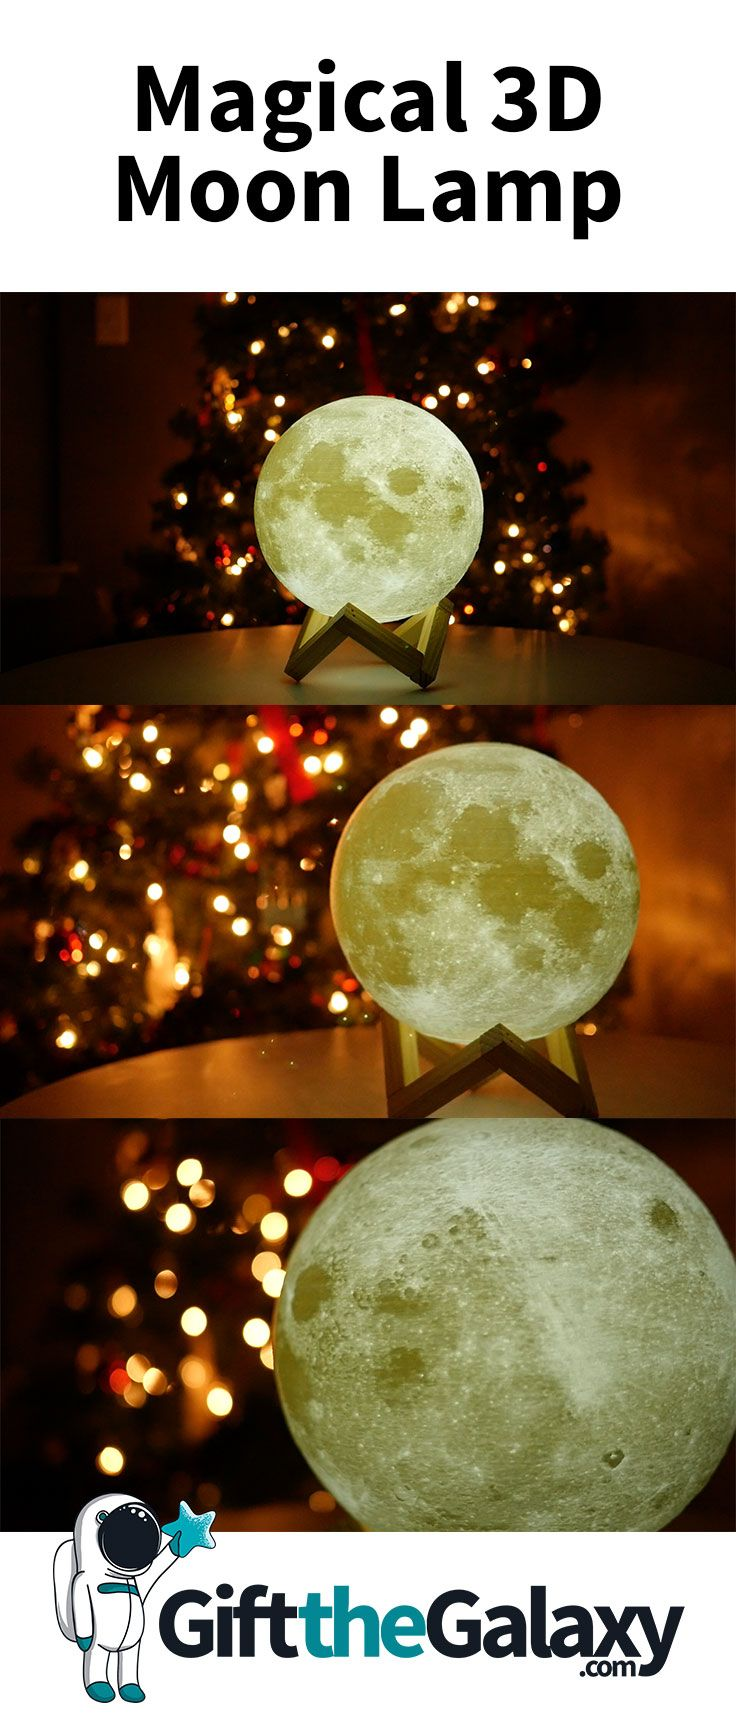 Enchanting 3d Moon Light Giftthegalaxy Com The Best Gifts In The Galaxy Astronomy Gift Astronomy Decor Astronomy Crafts